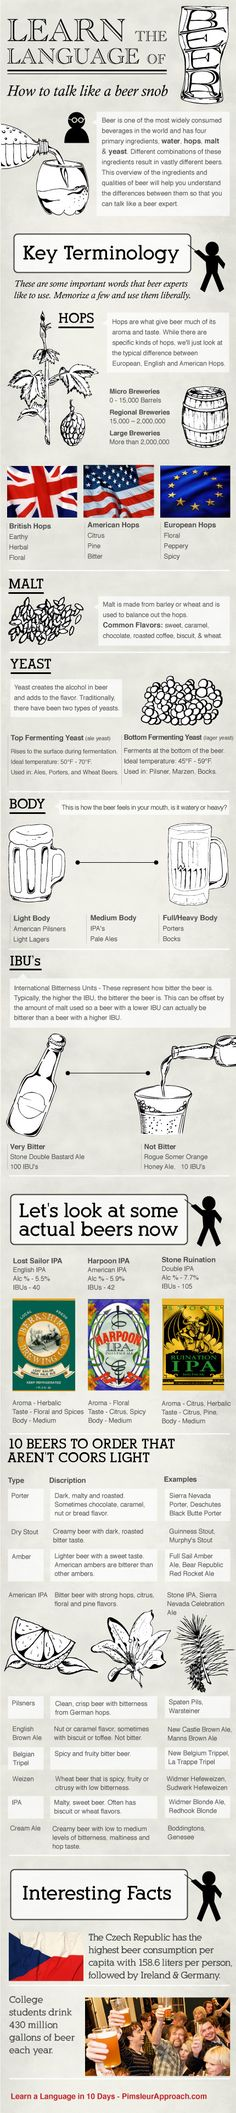 cool beer info chart someone posted to reddit